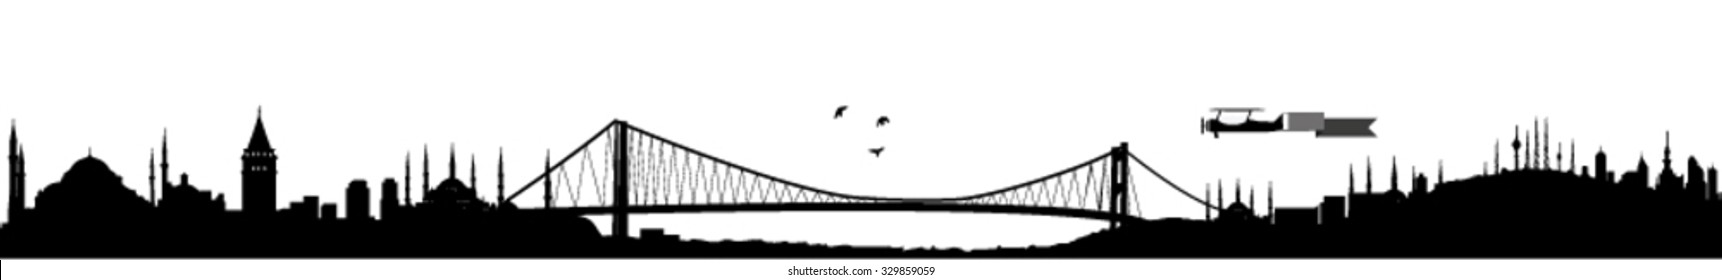 Istanbul two continents meets skyline silhouette vector, black and white design